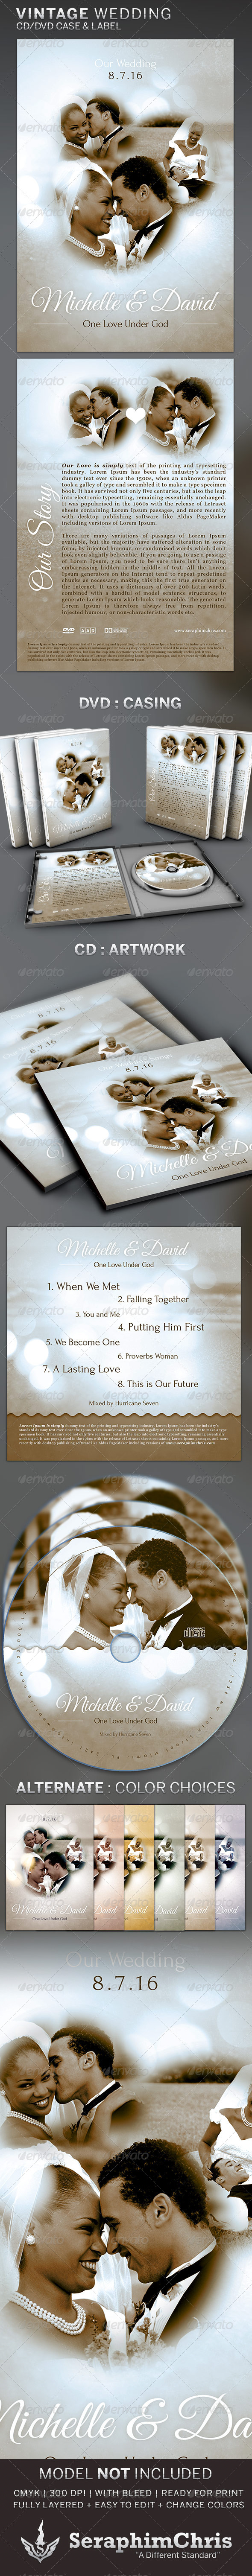 Vintage Wedding: CD/DVD Template - CD & DVD artwork Print Templates